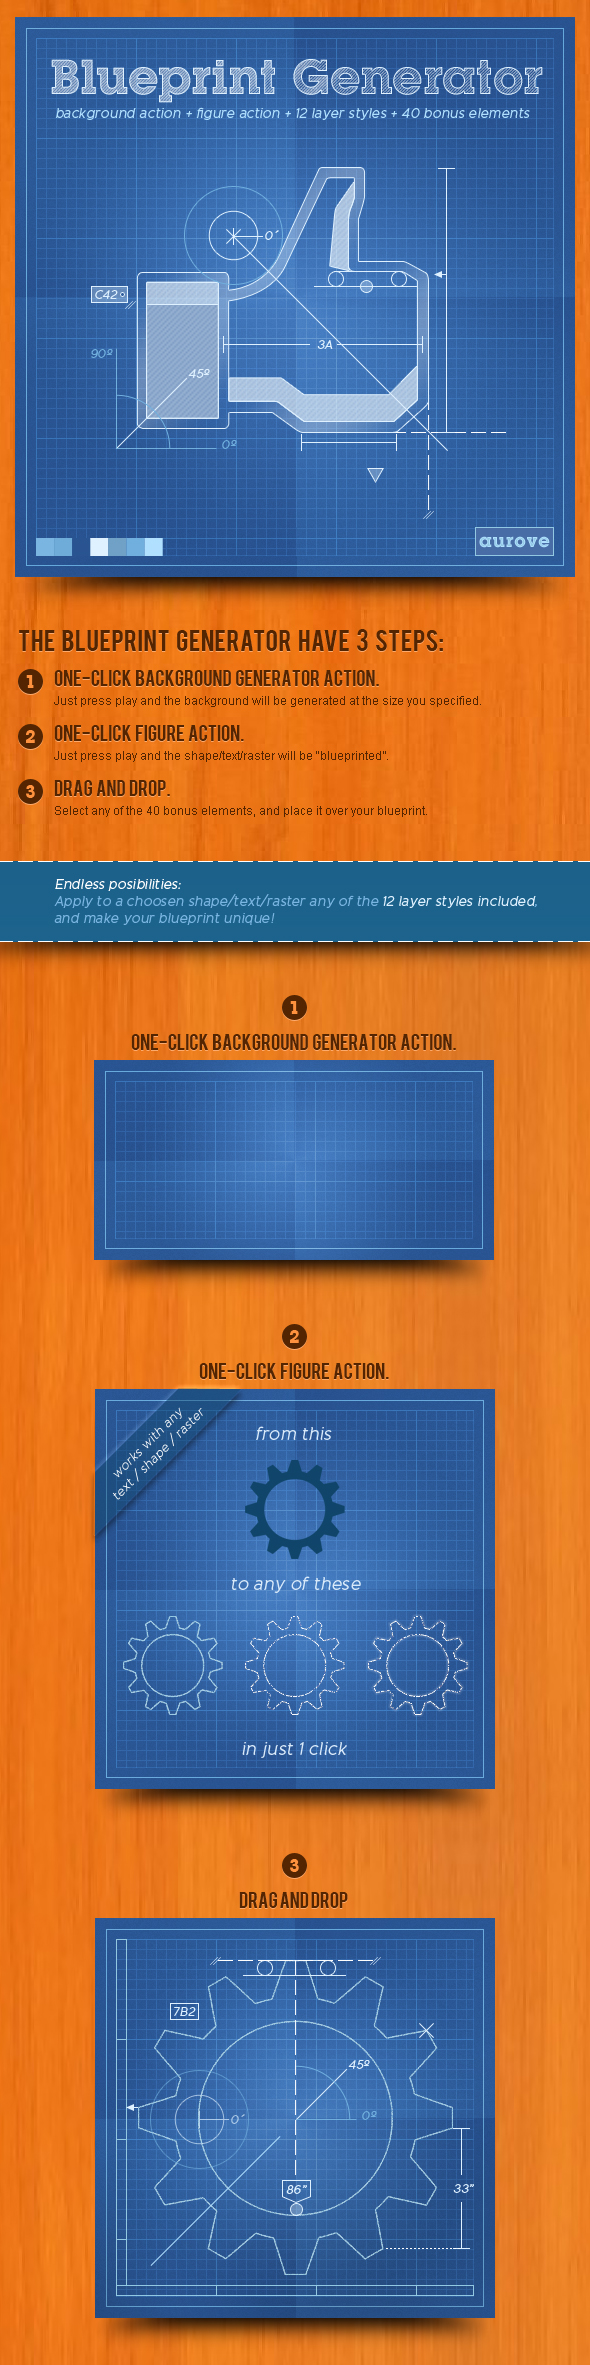 Blueprint generator by aurovedesign on deviantart blueprint generator by aurovedesign blueprint generator by aurovedesign malvernweather Choice Image